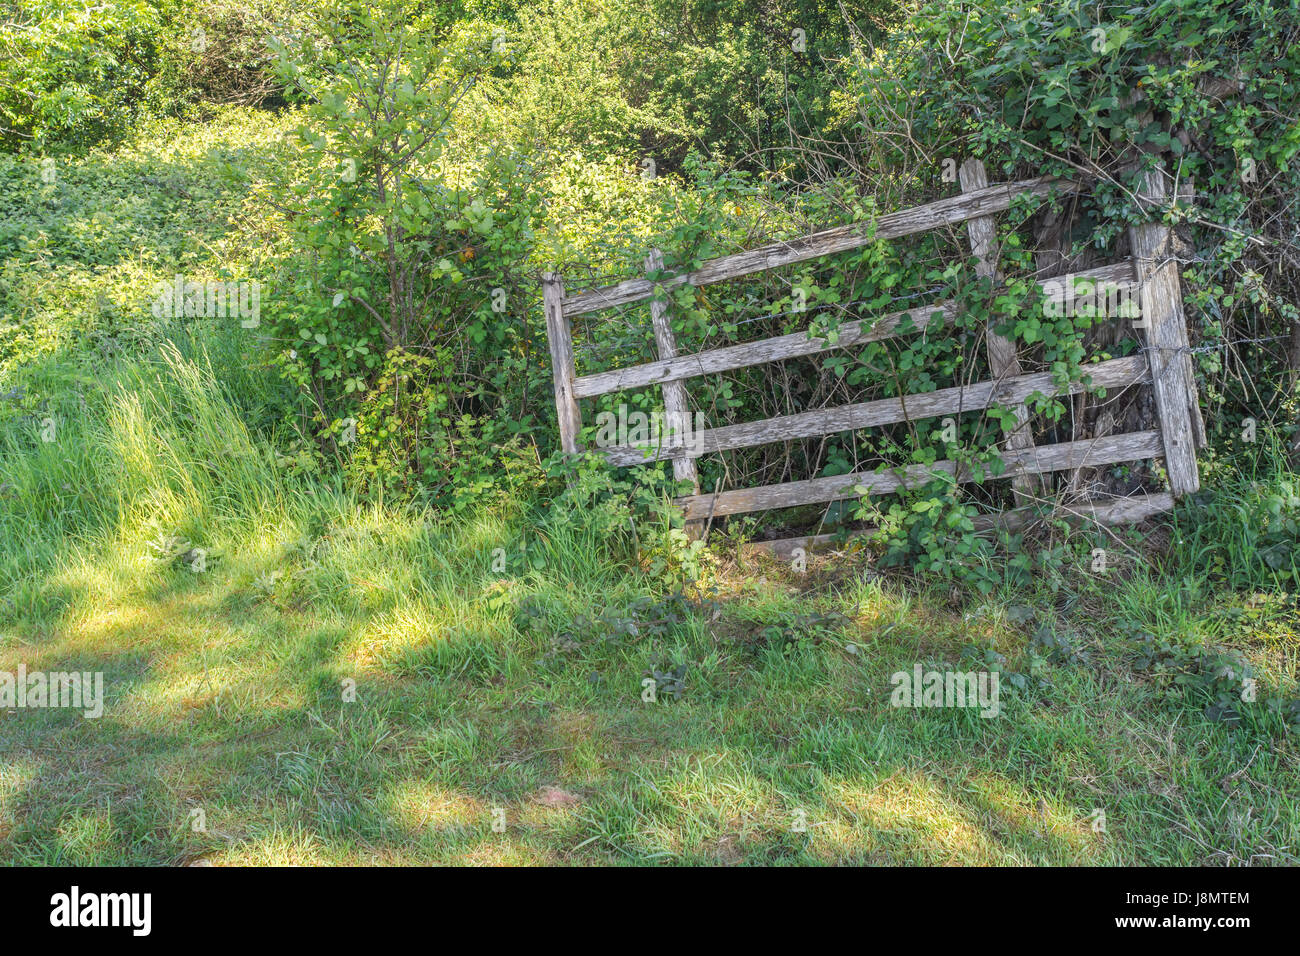 Dilapidated wooden field gate - possible metaphor for 'no restrictions' or obstacles, and 'floodgates - Stock Image